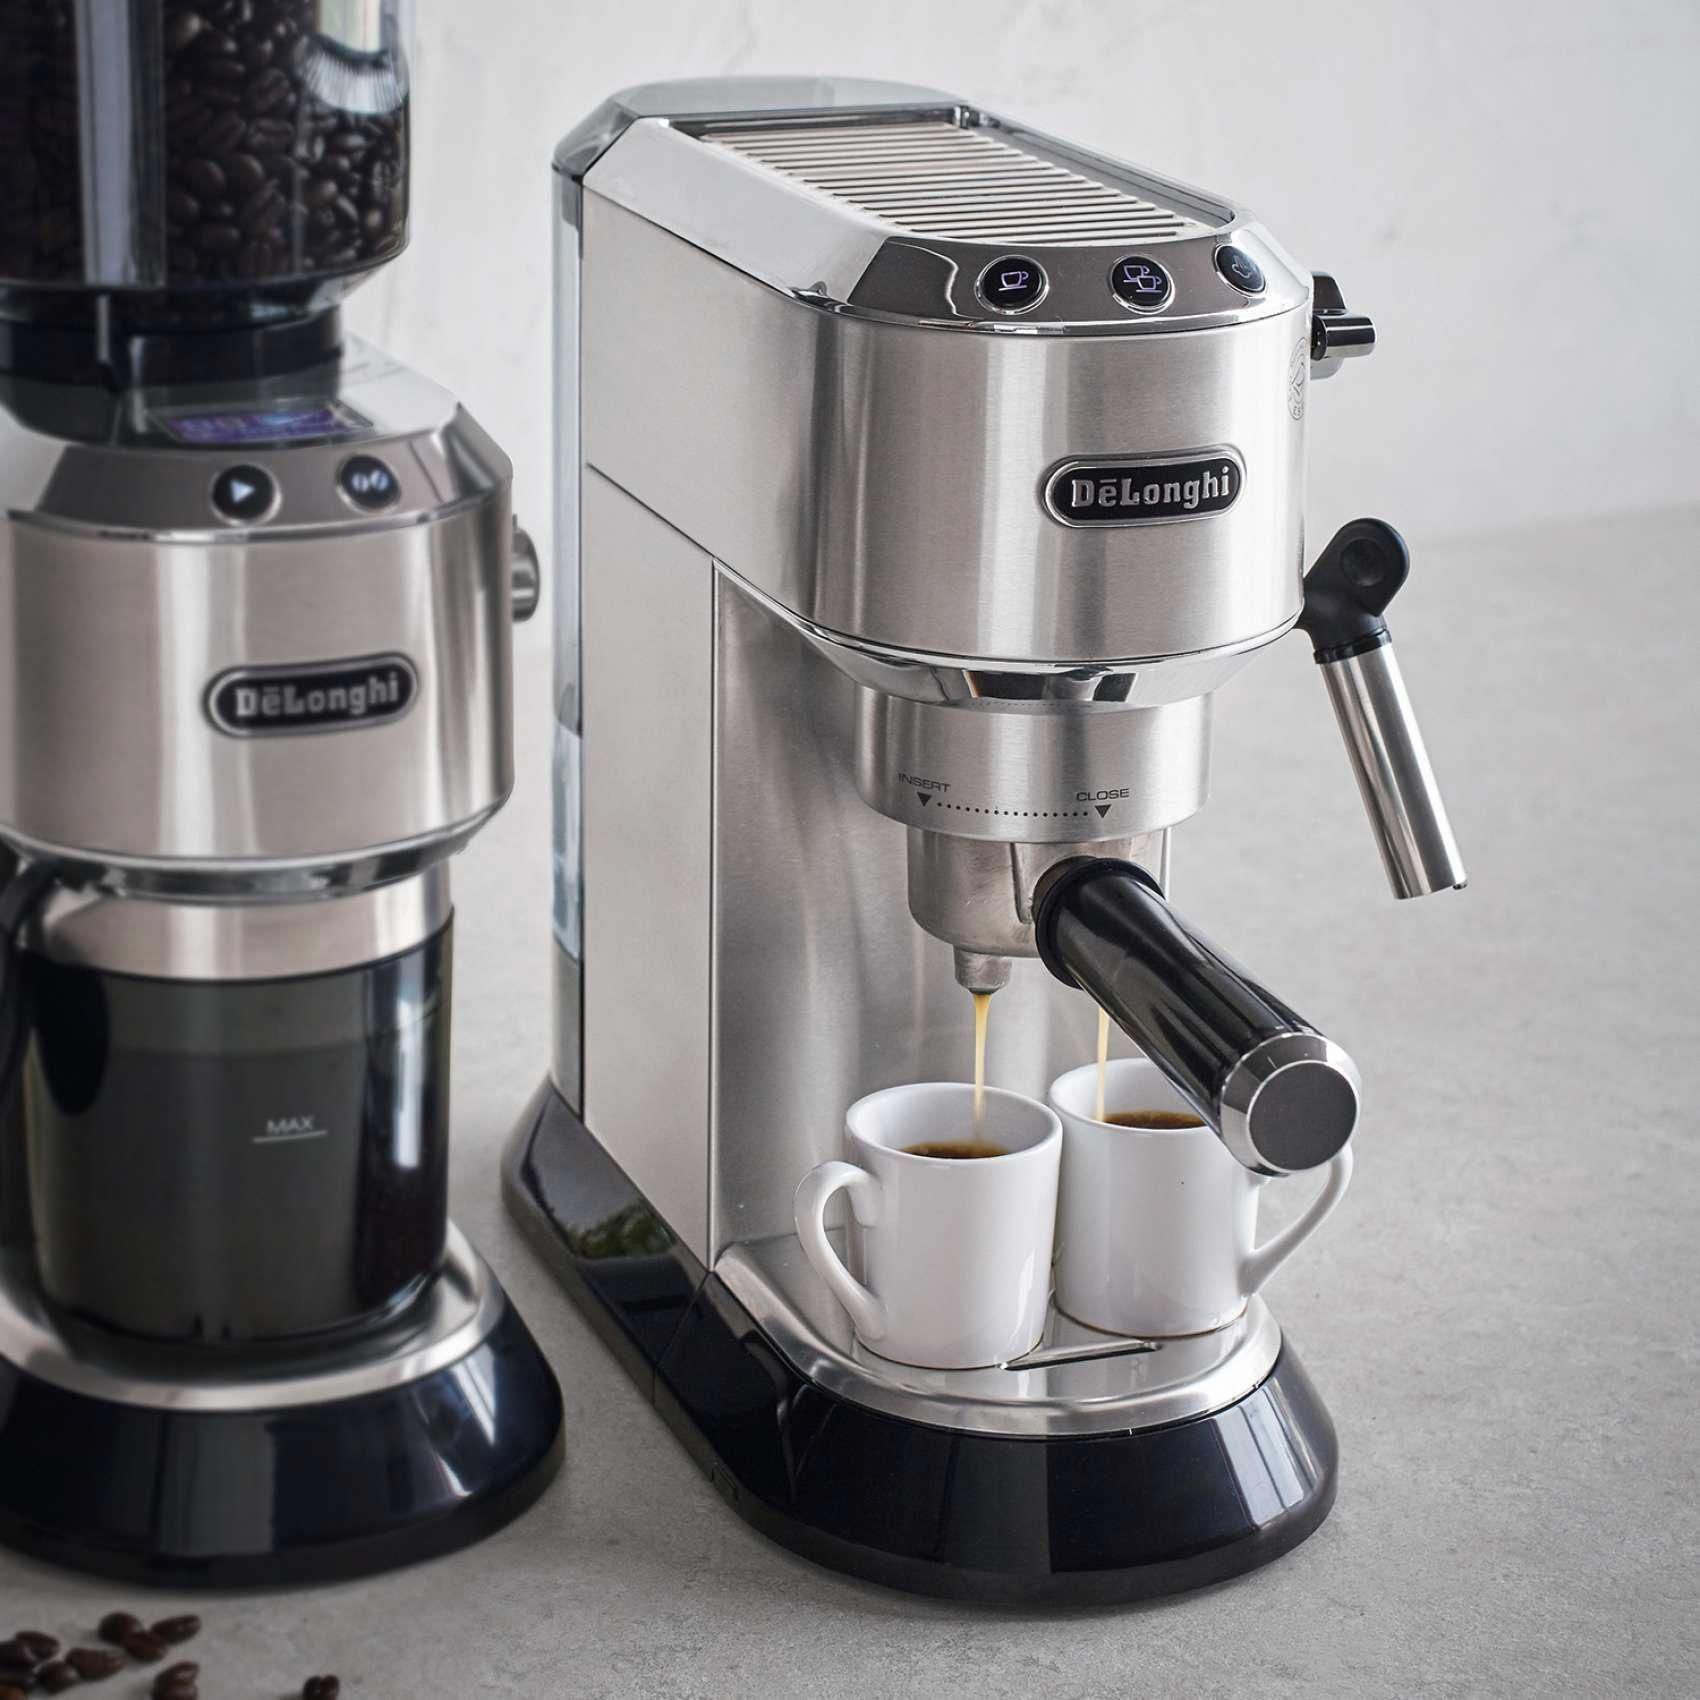 De'Longhi Dedica Pump Espresso Machine | Sur La Table # ...